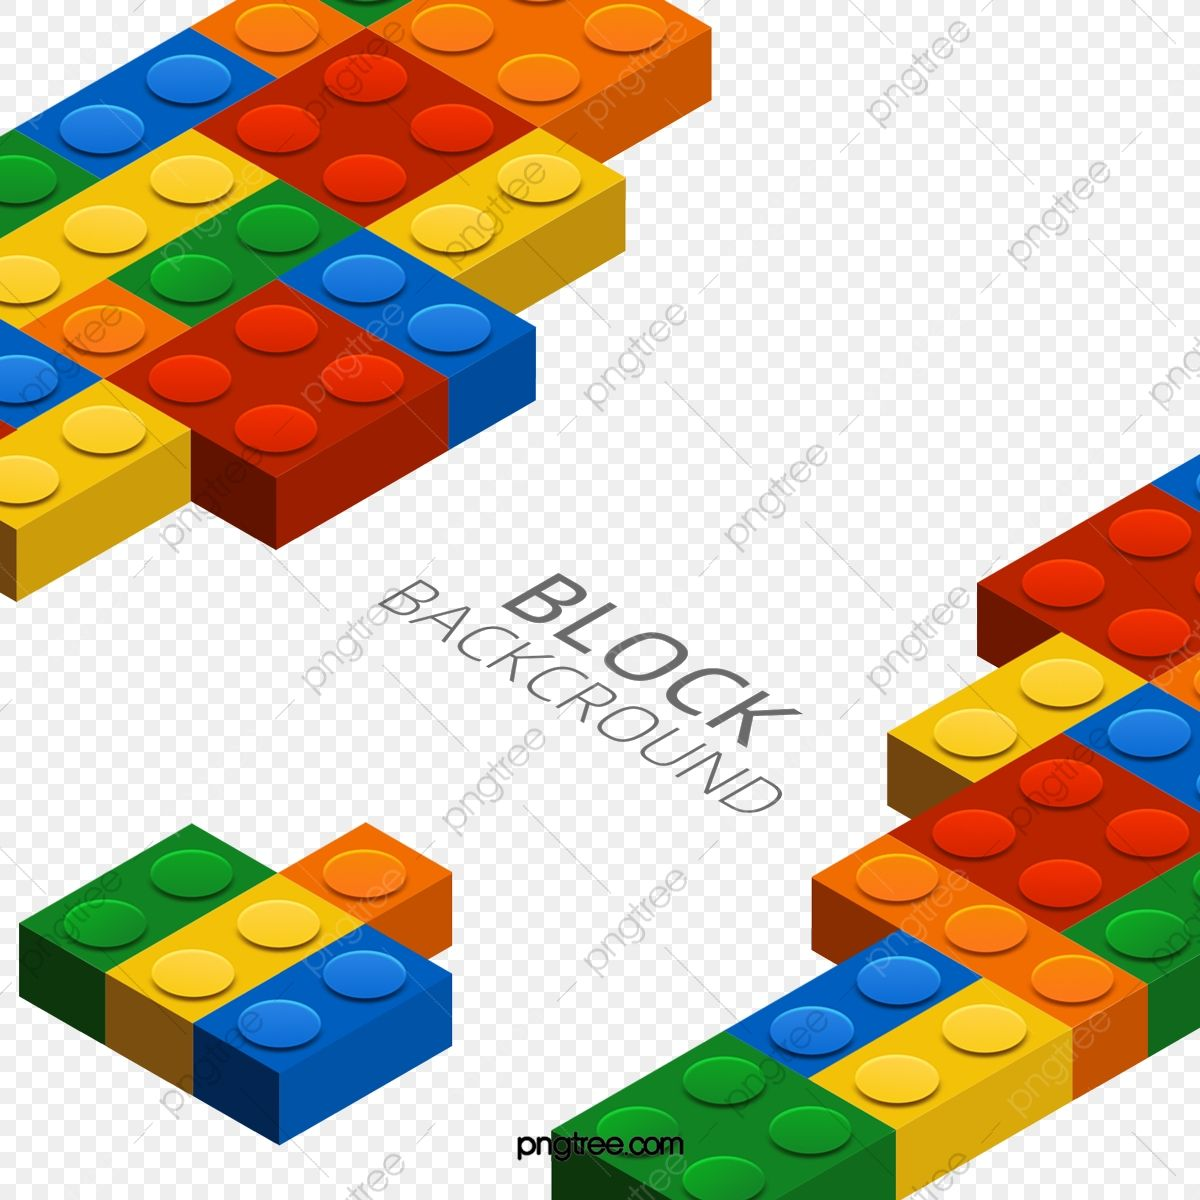 Three Dimensional Lego Toys Stereoscopic Lego Toy Png Transparent Clipart Image And Psd File For Free Download Lego Toys Three Dimensional Stereoscopic